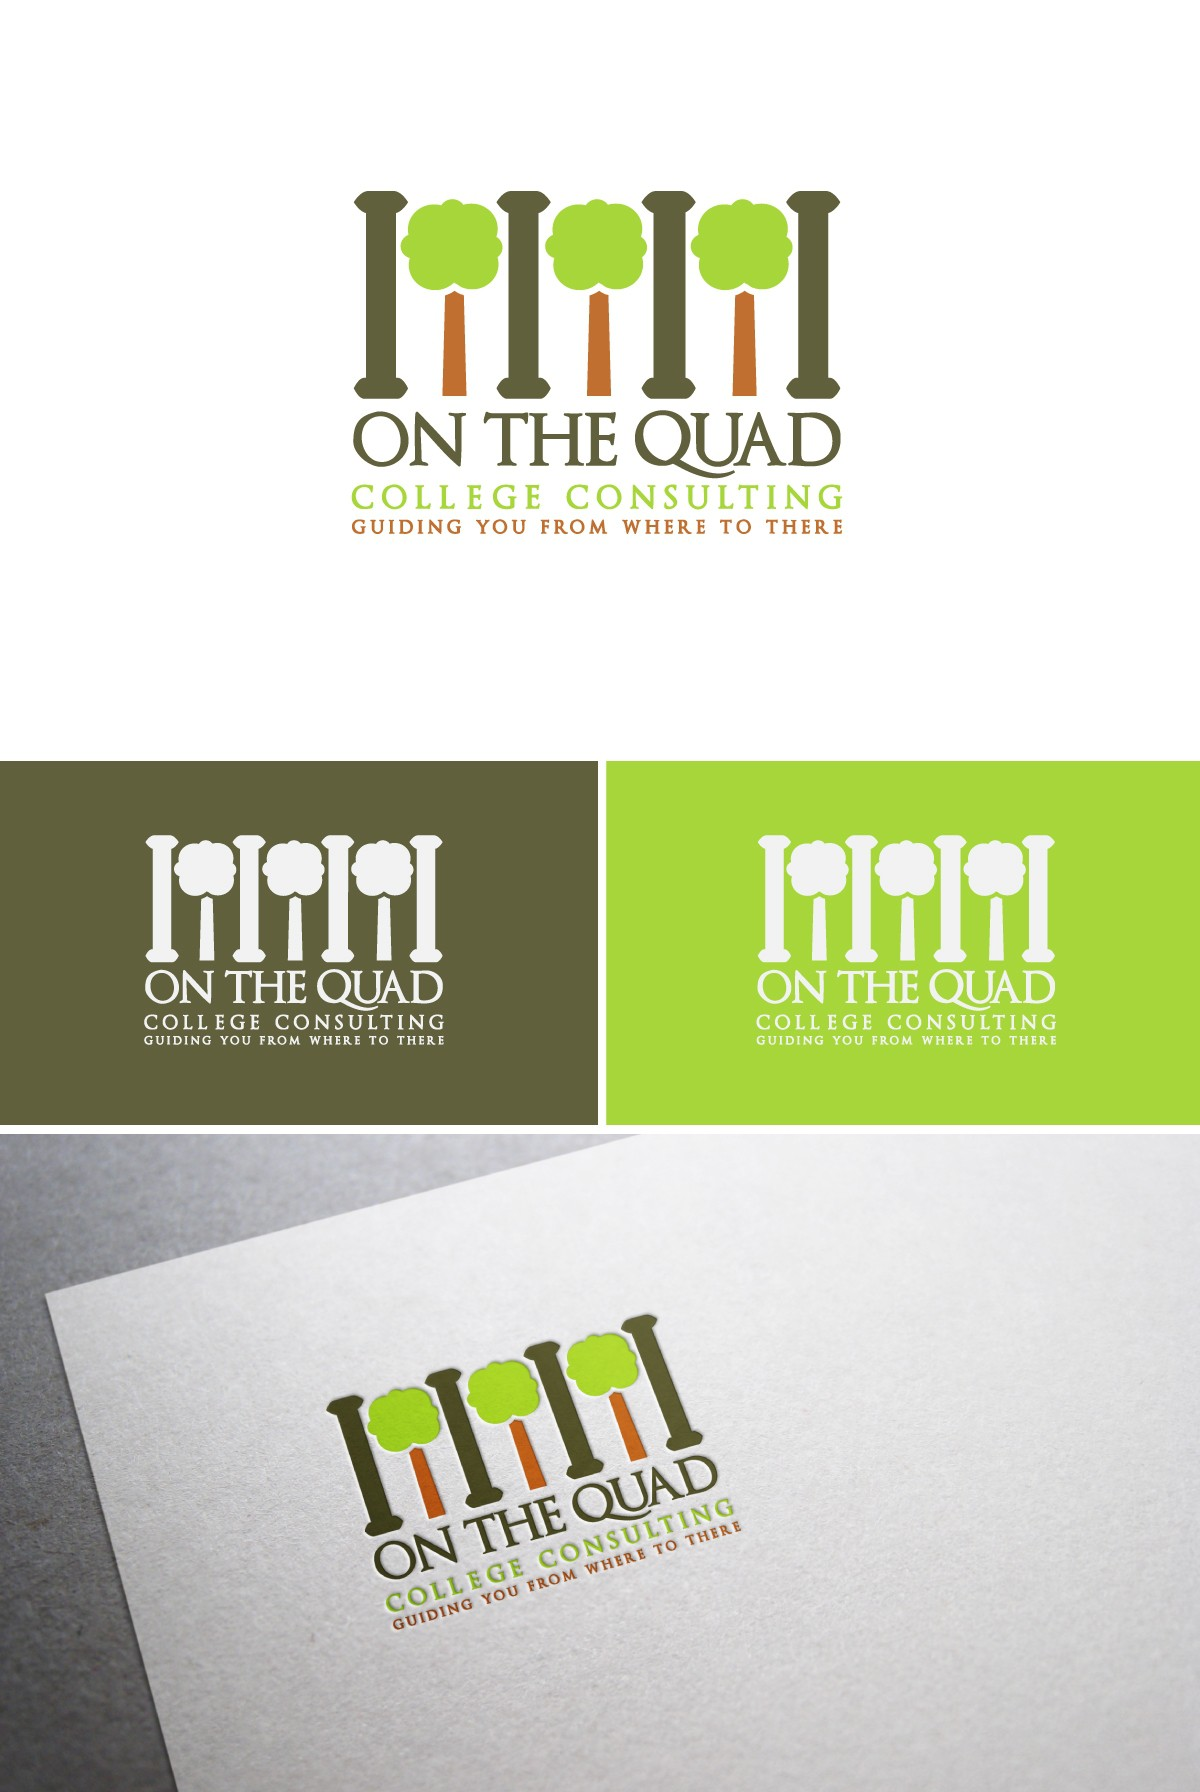 Create a mod but still classic logo college consulting business - On the Quad - trees and columns